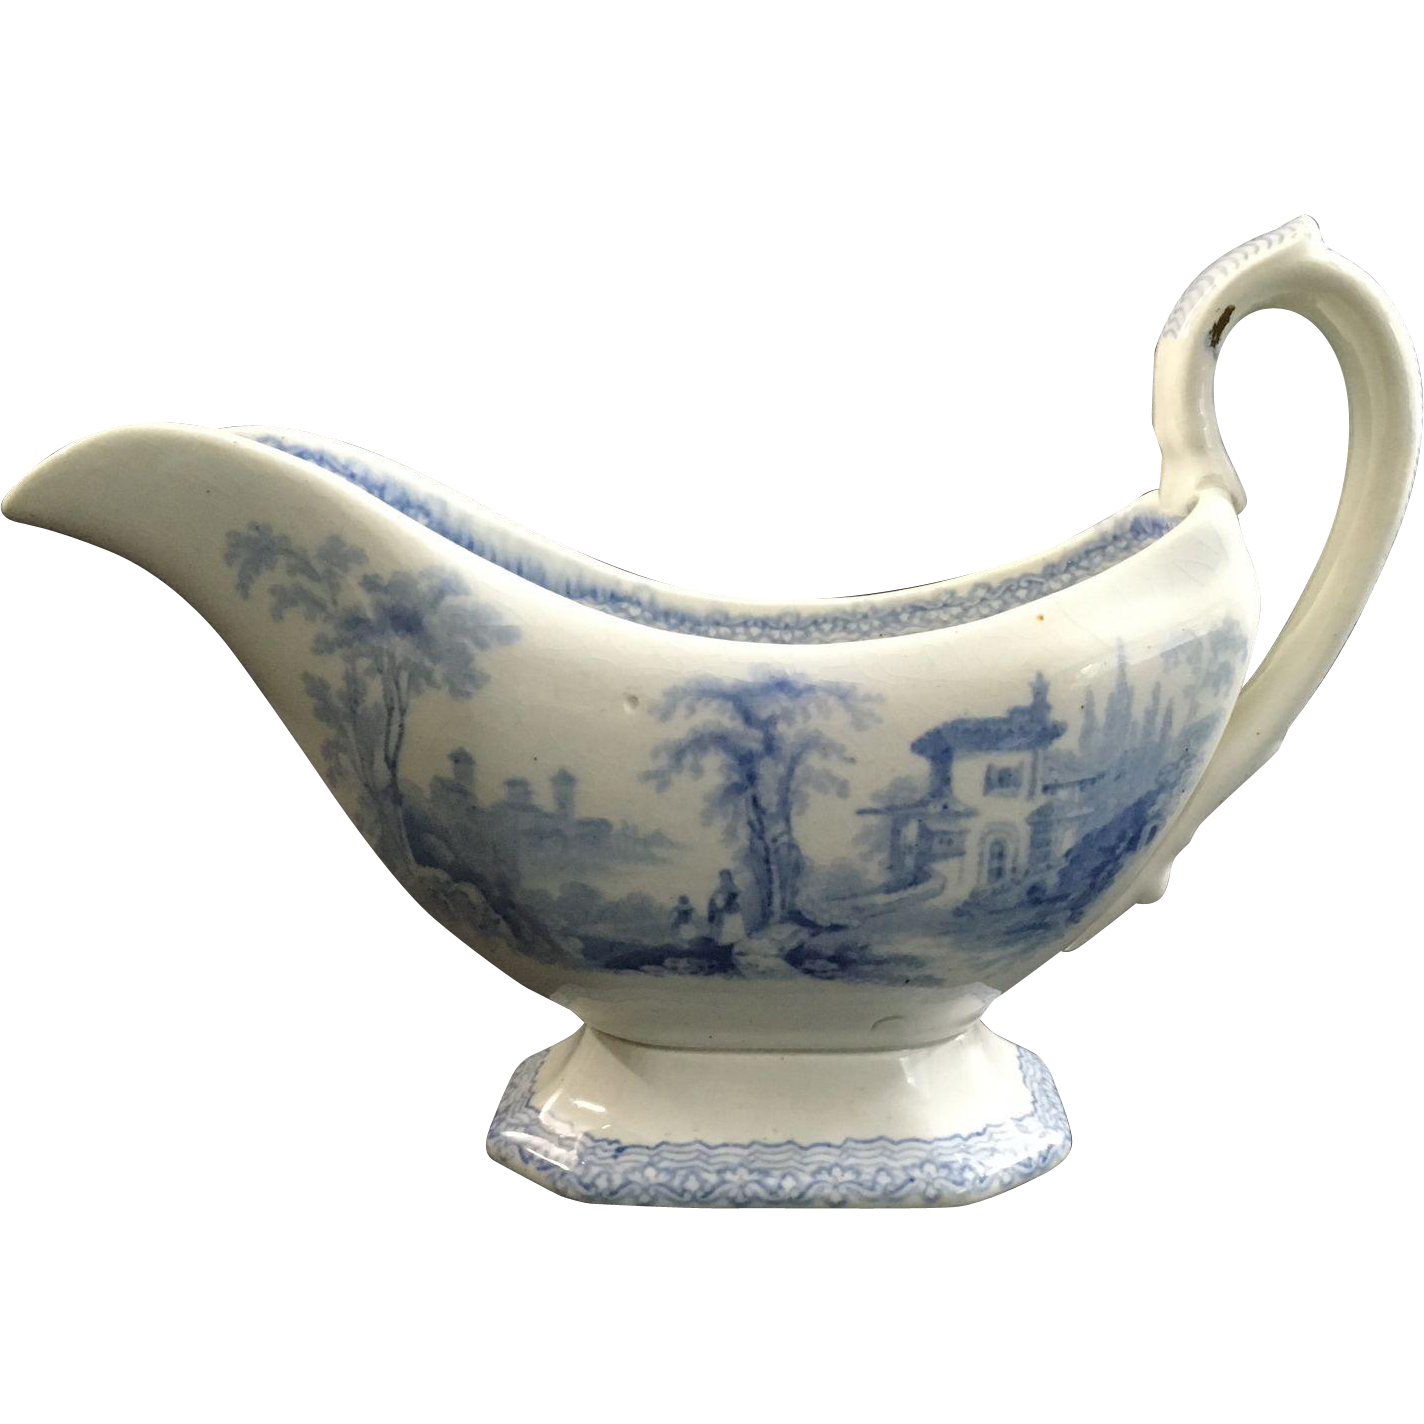 1844 Blue and White Transfer Pitcher